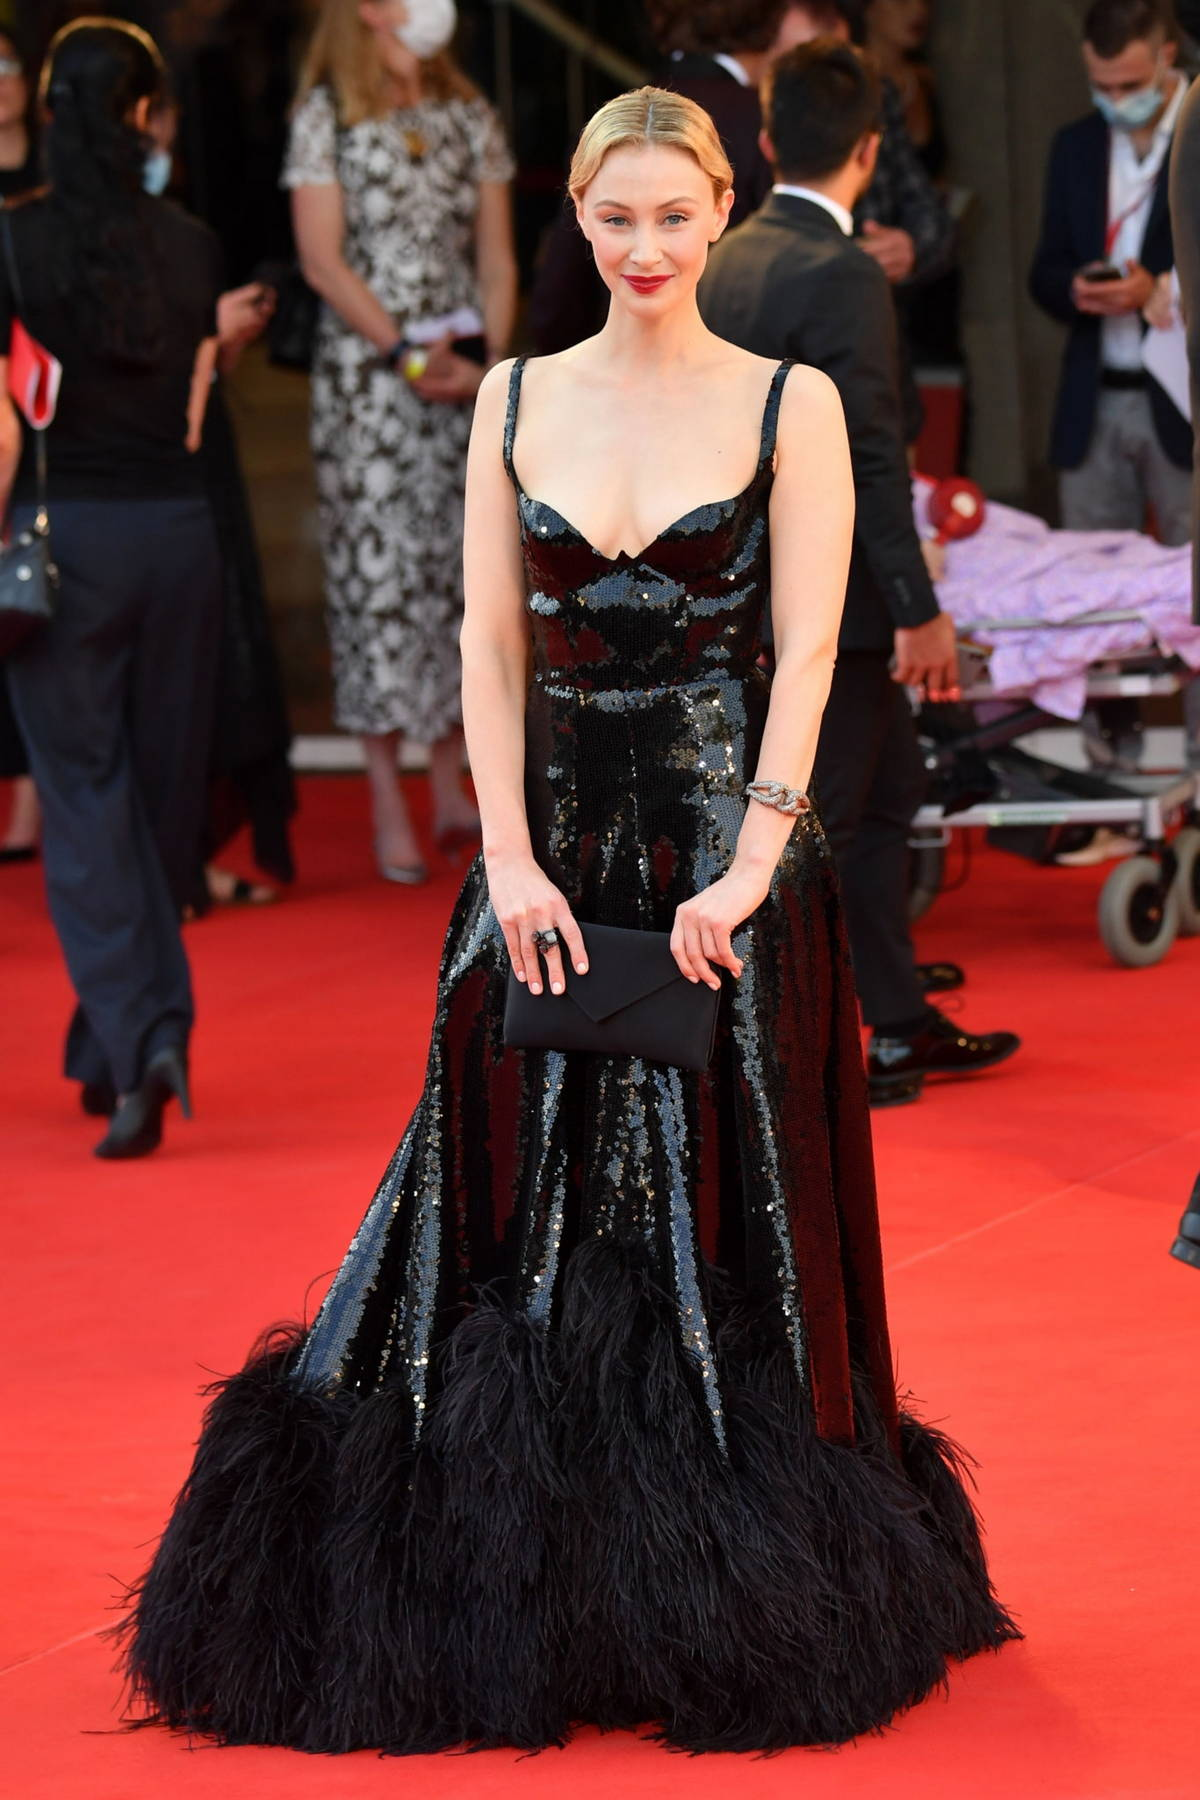 Sarah Gadon attends the Premiere of 'Dune' during the 78th Venice International Film Festival in Venice, Italy